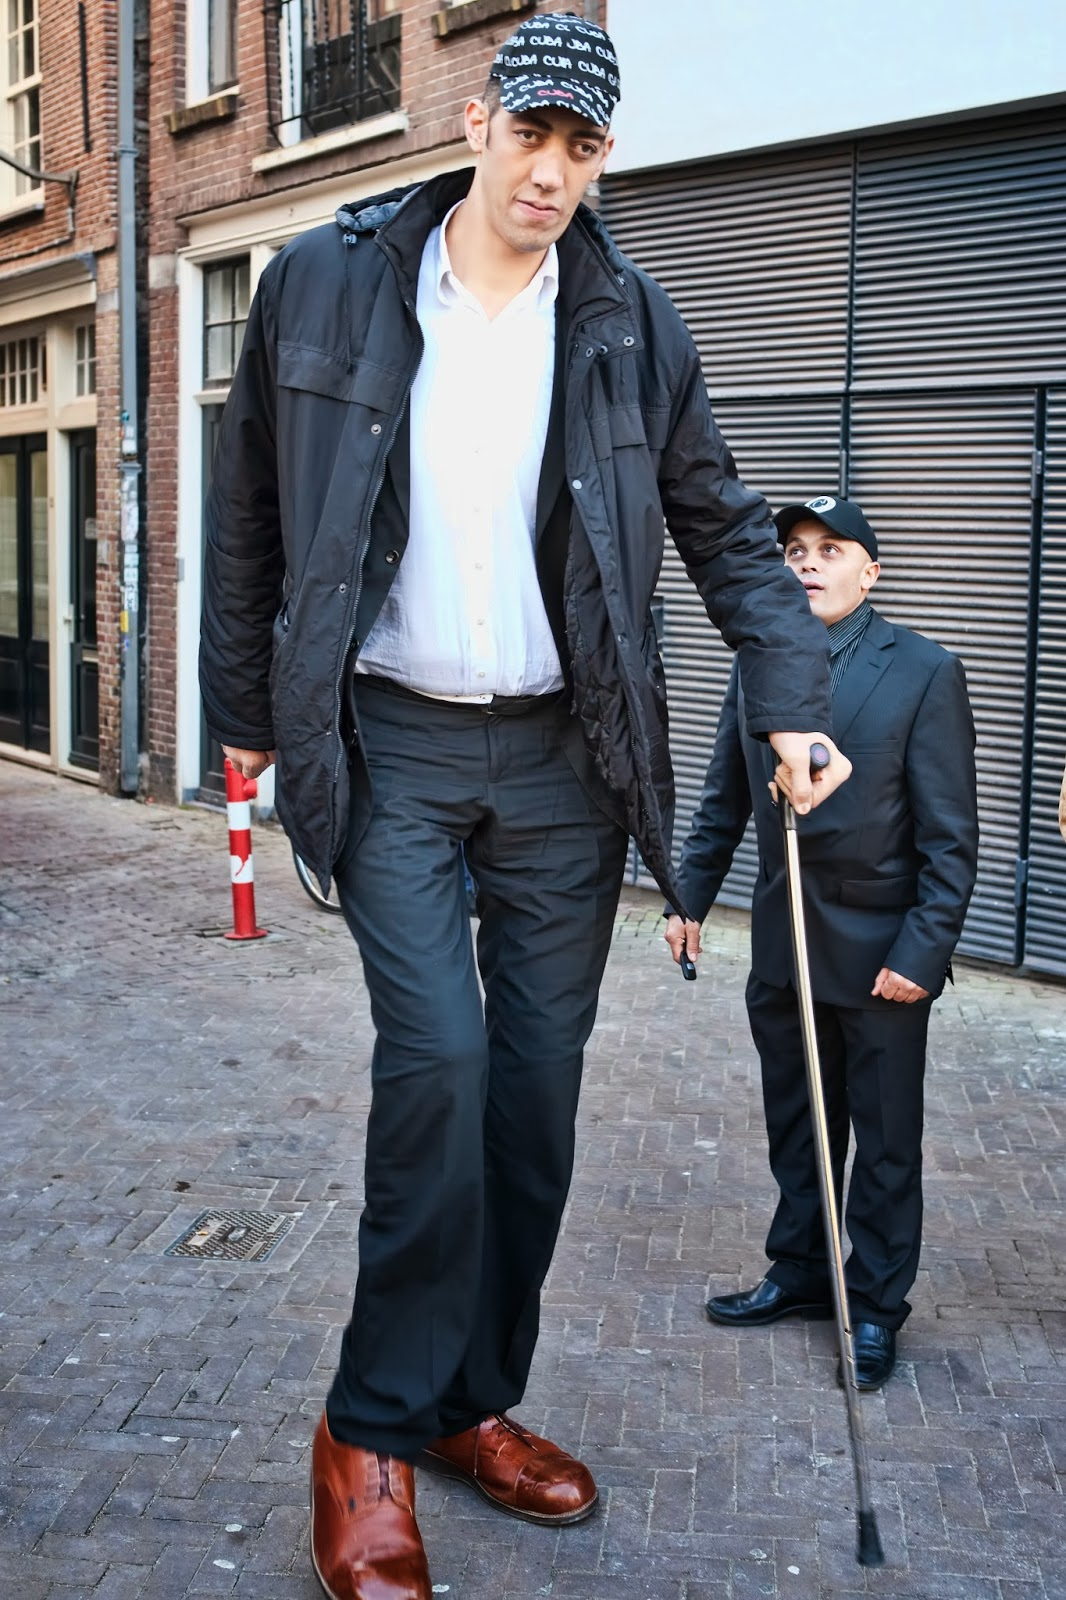 Did You Know Tallest People Ever